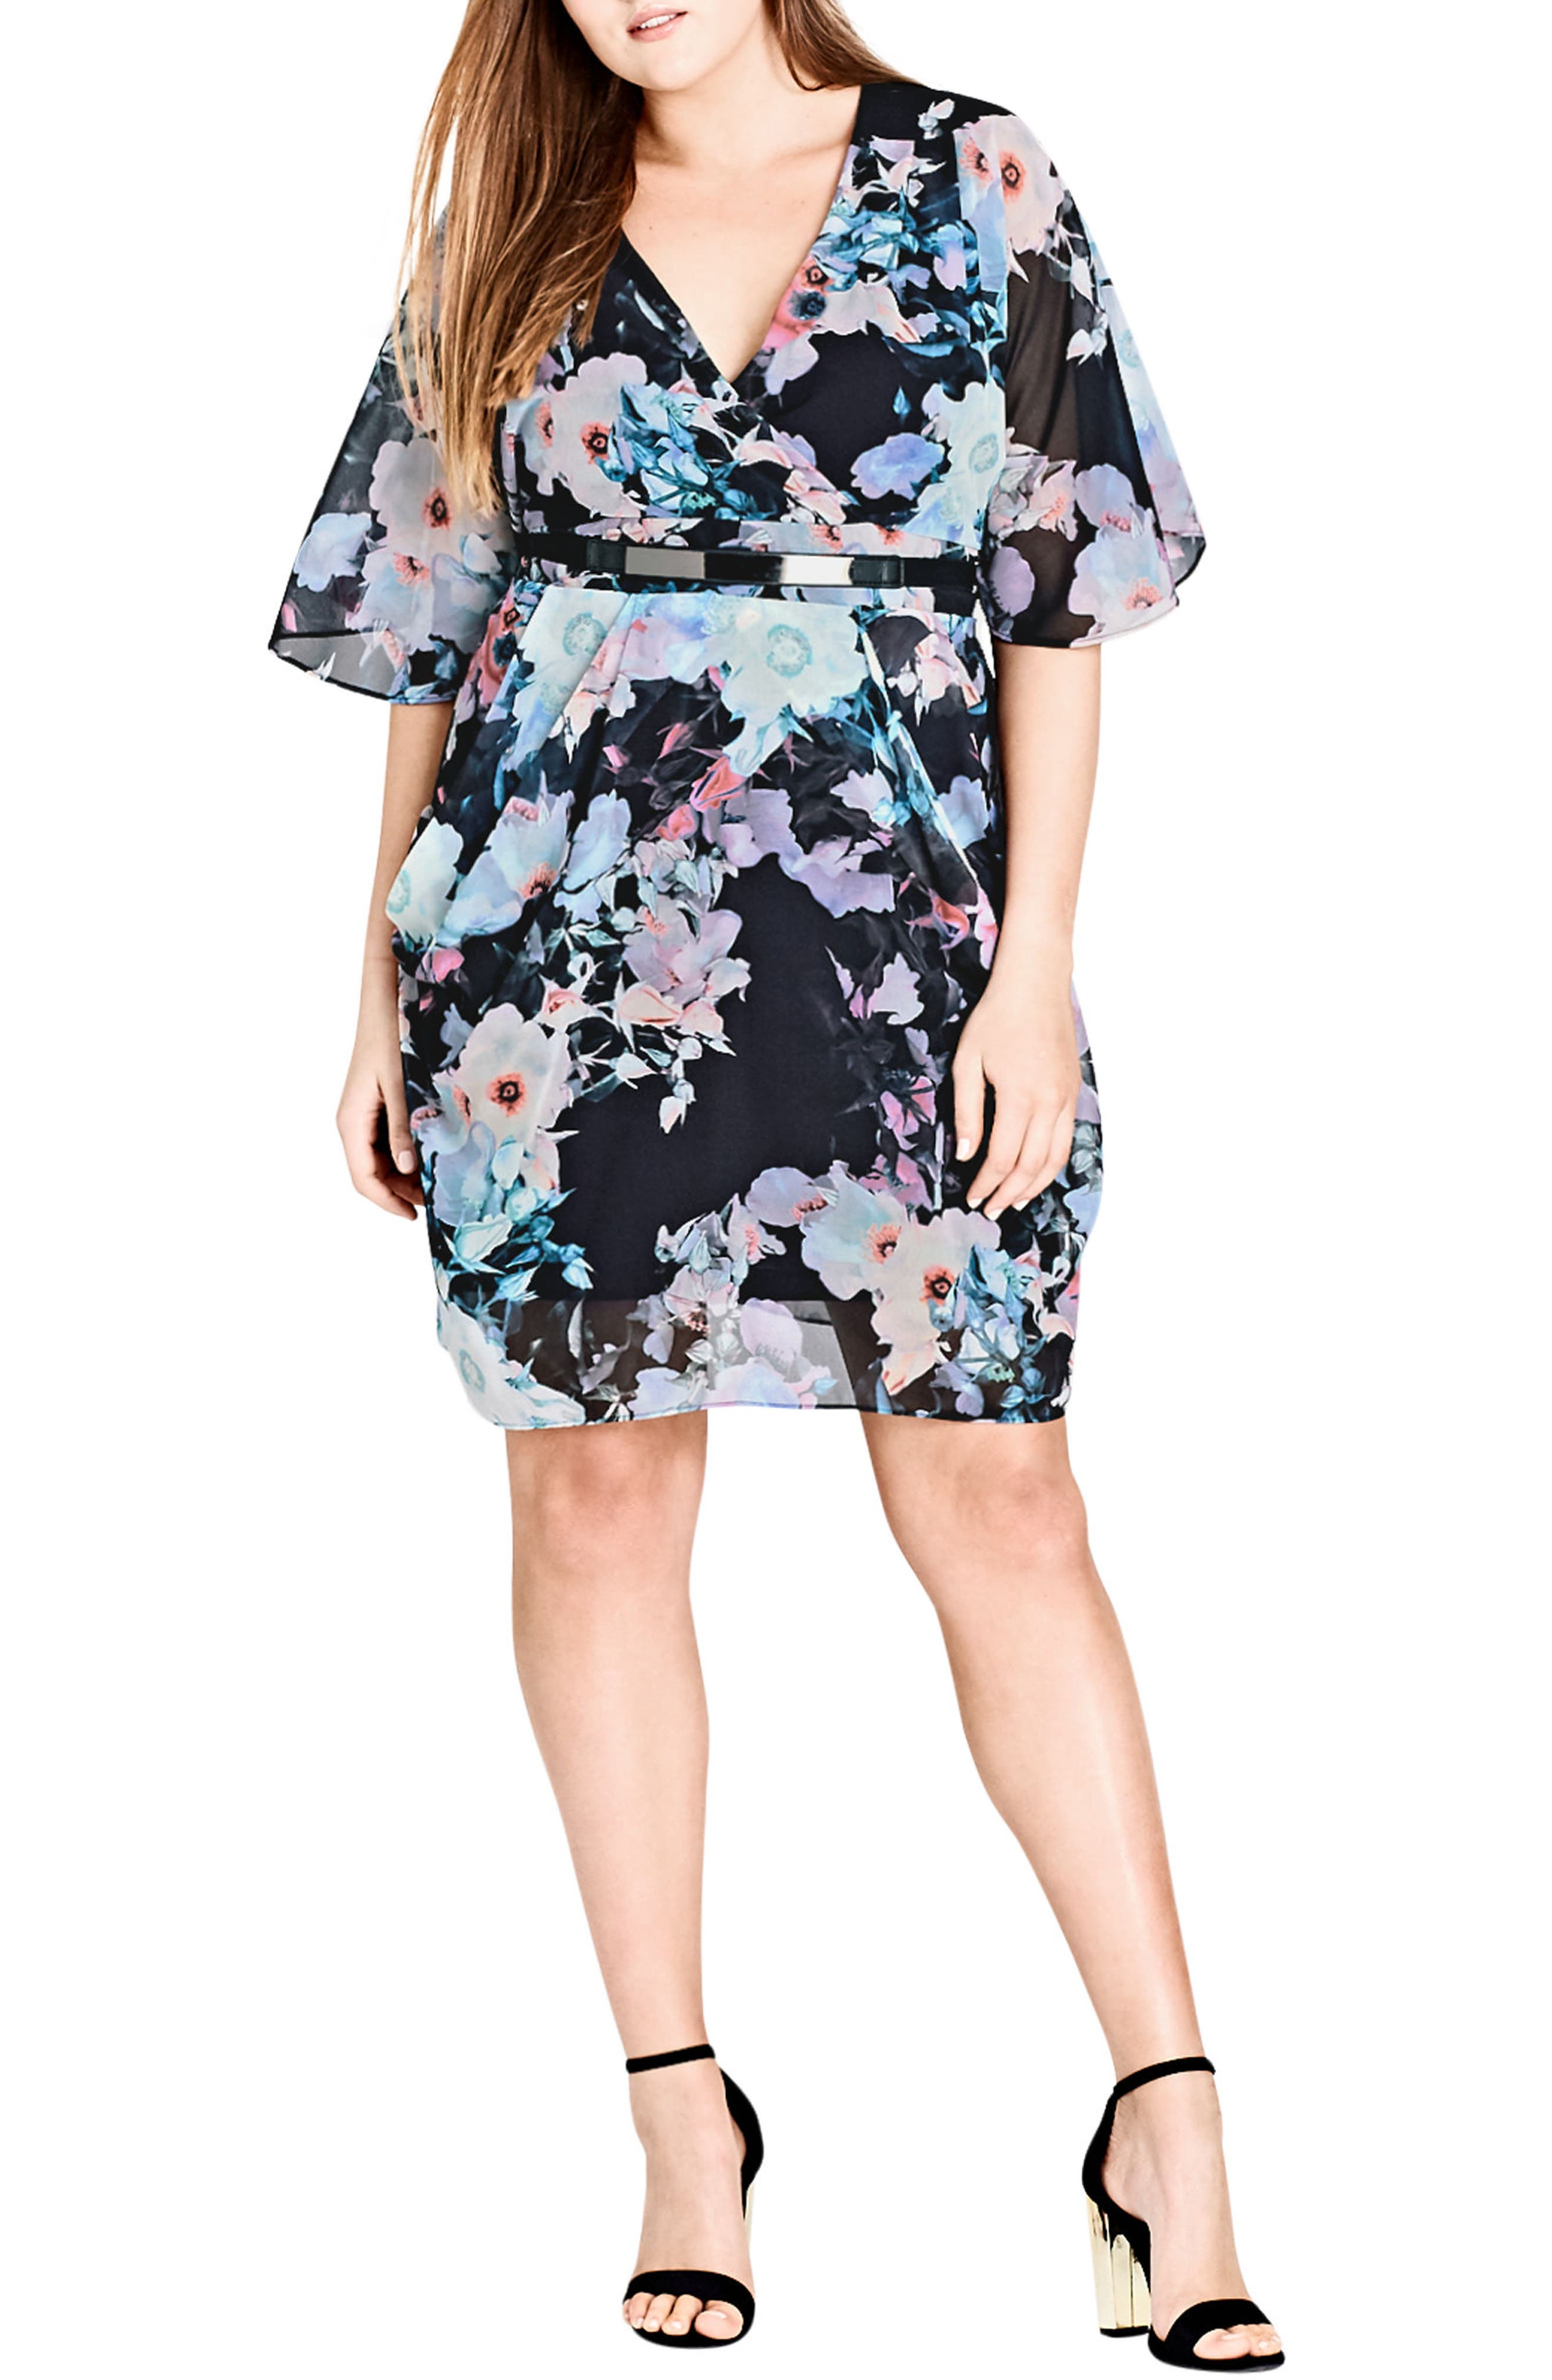 Alternate Image 1 Selected - City Chic Water Love Belted Faux Wrap Dress (Plus Size)